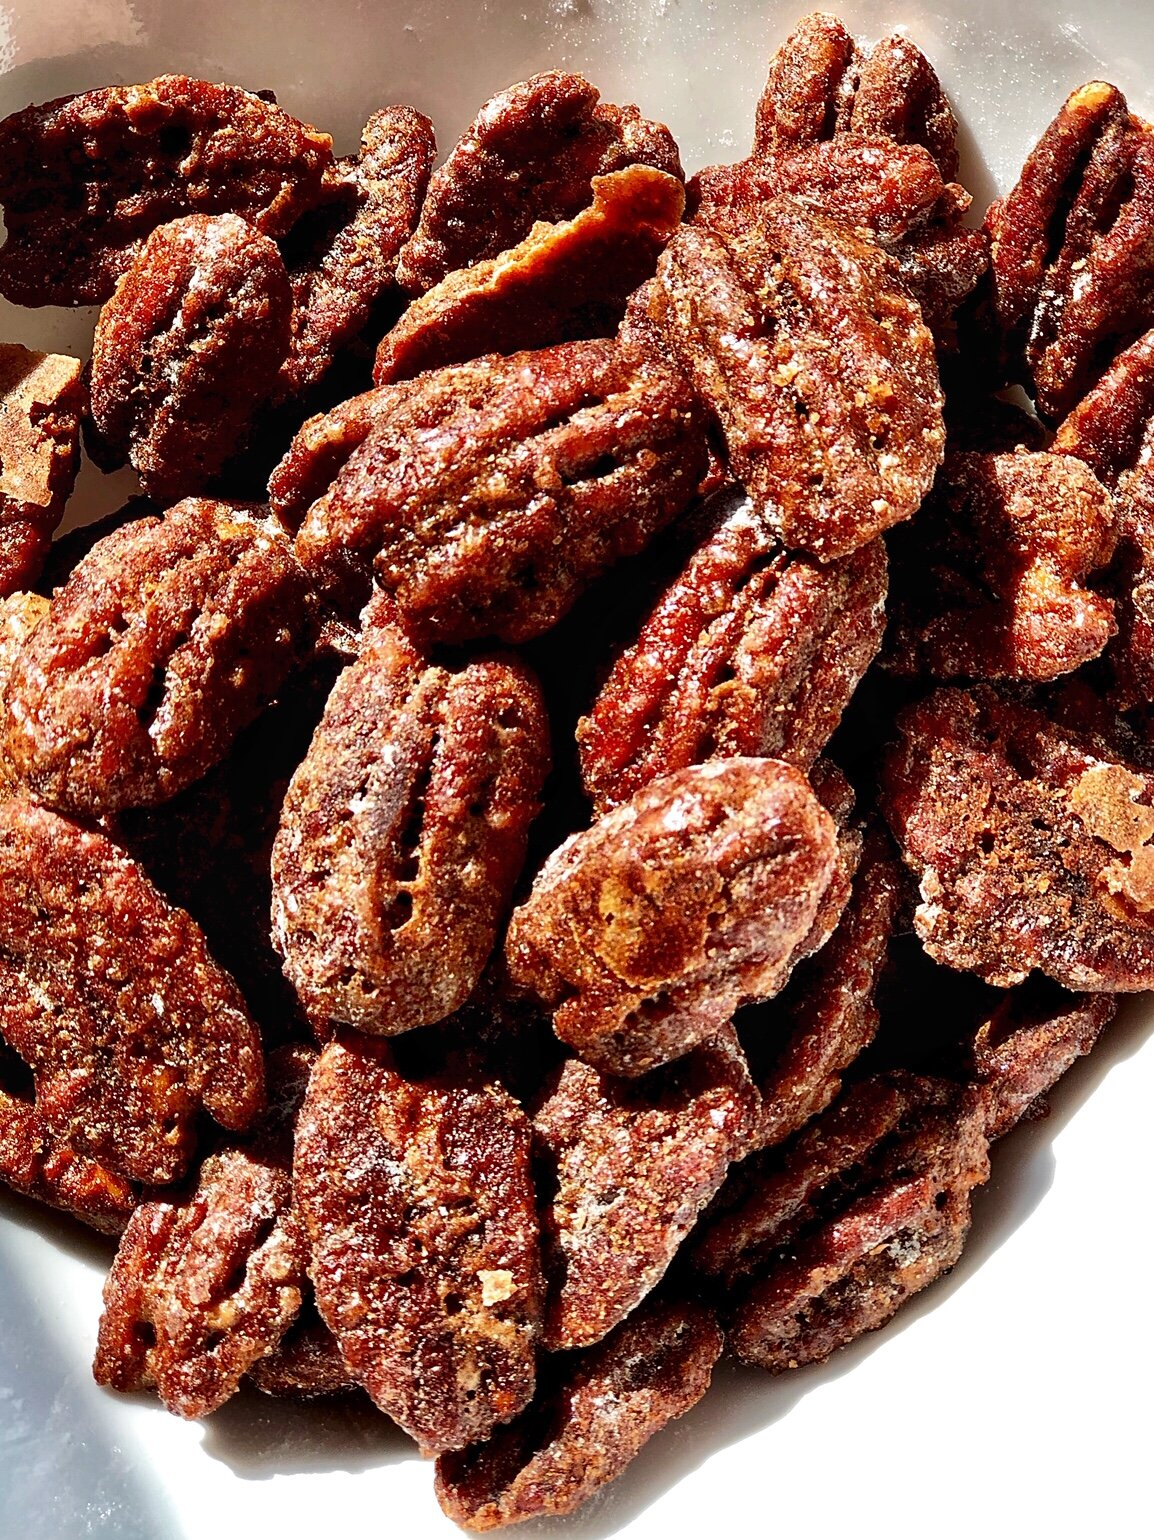 keto friendly candied nuts recipe